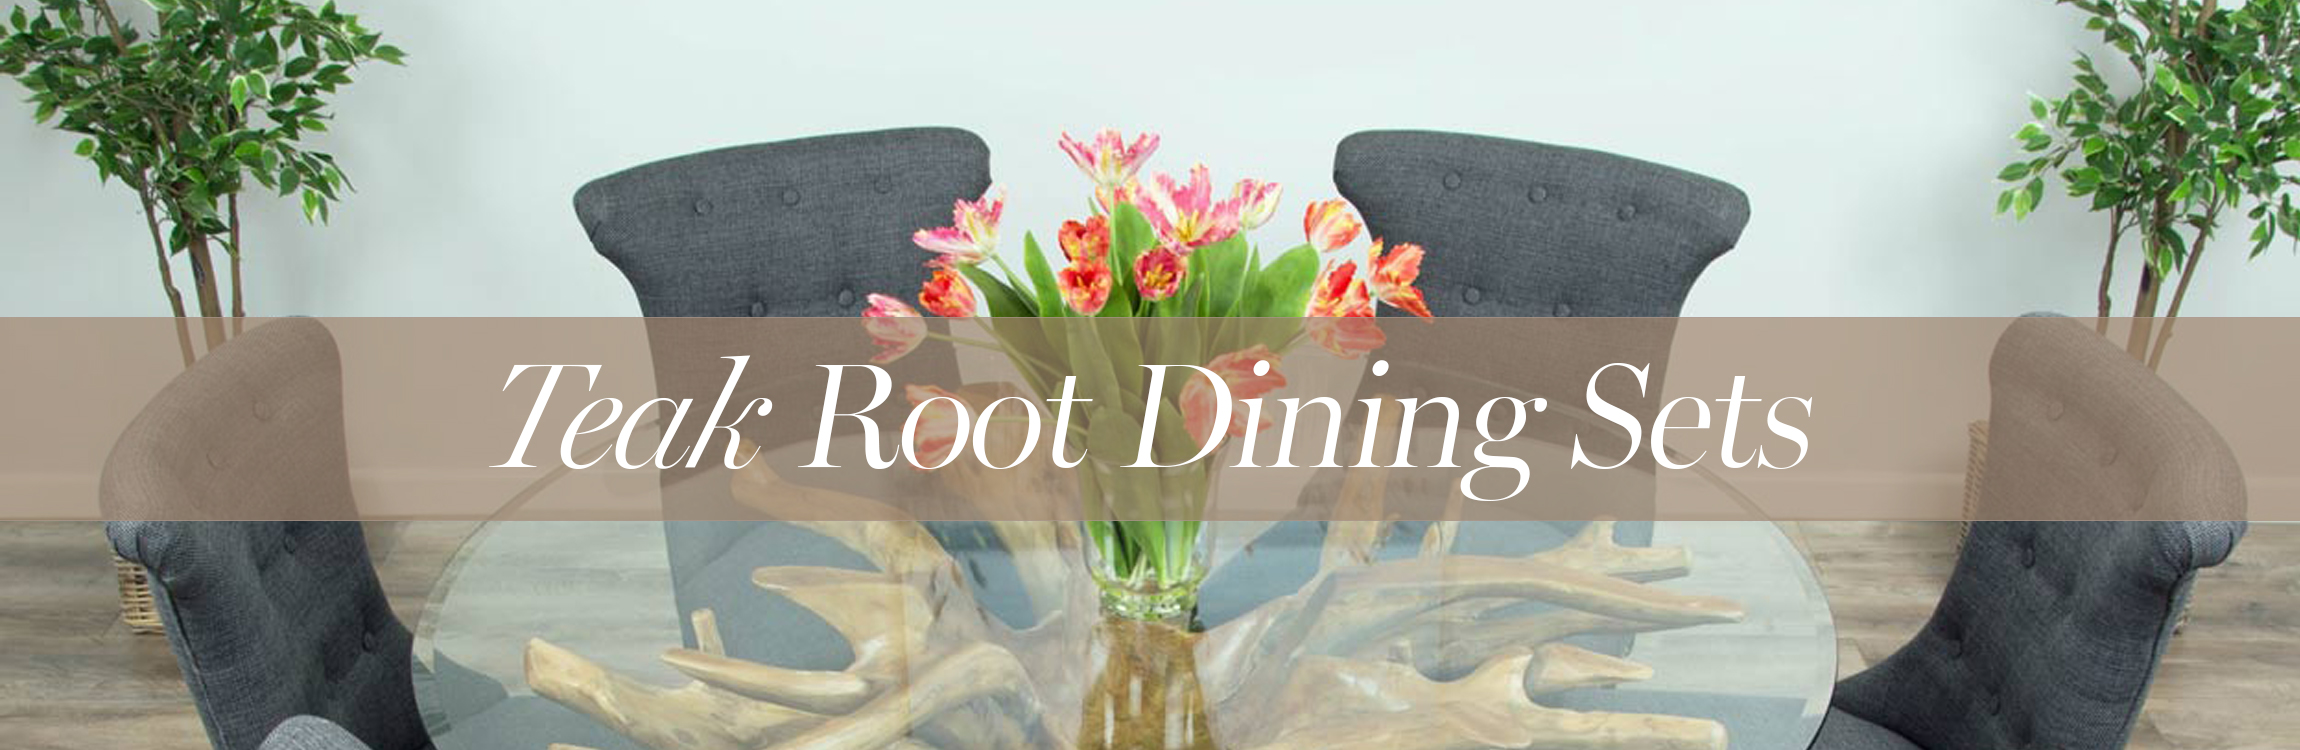 Teak Root Dining Sets